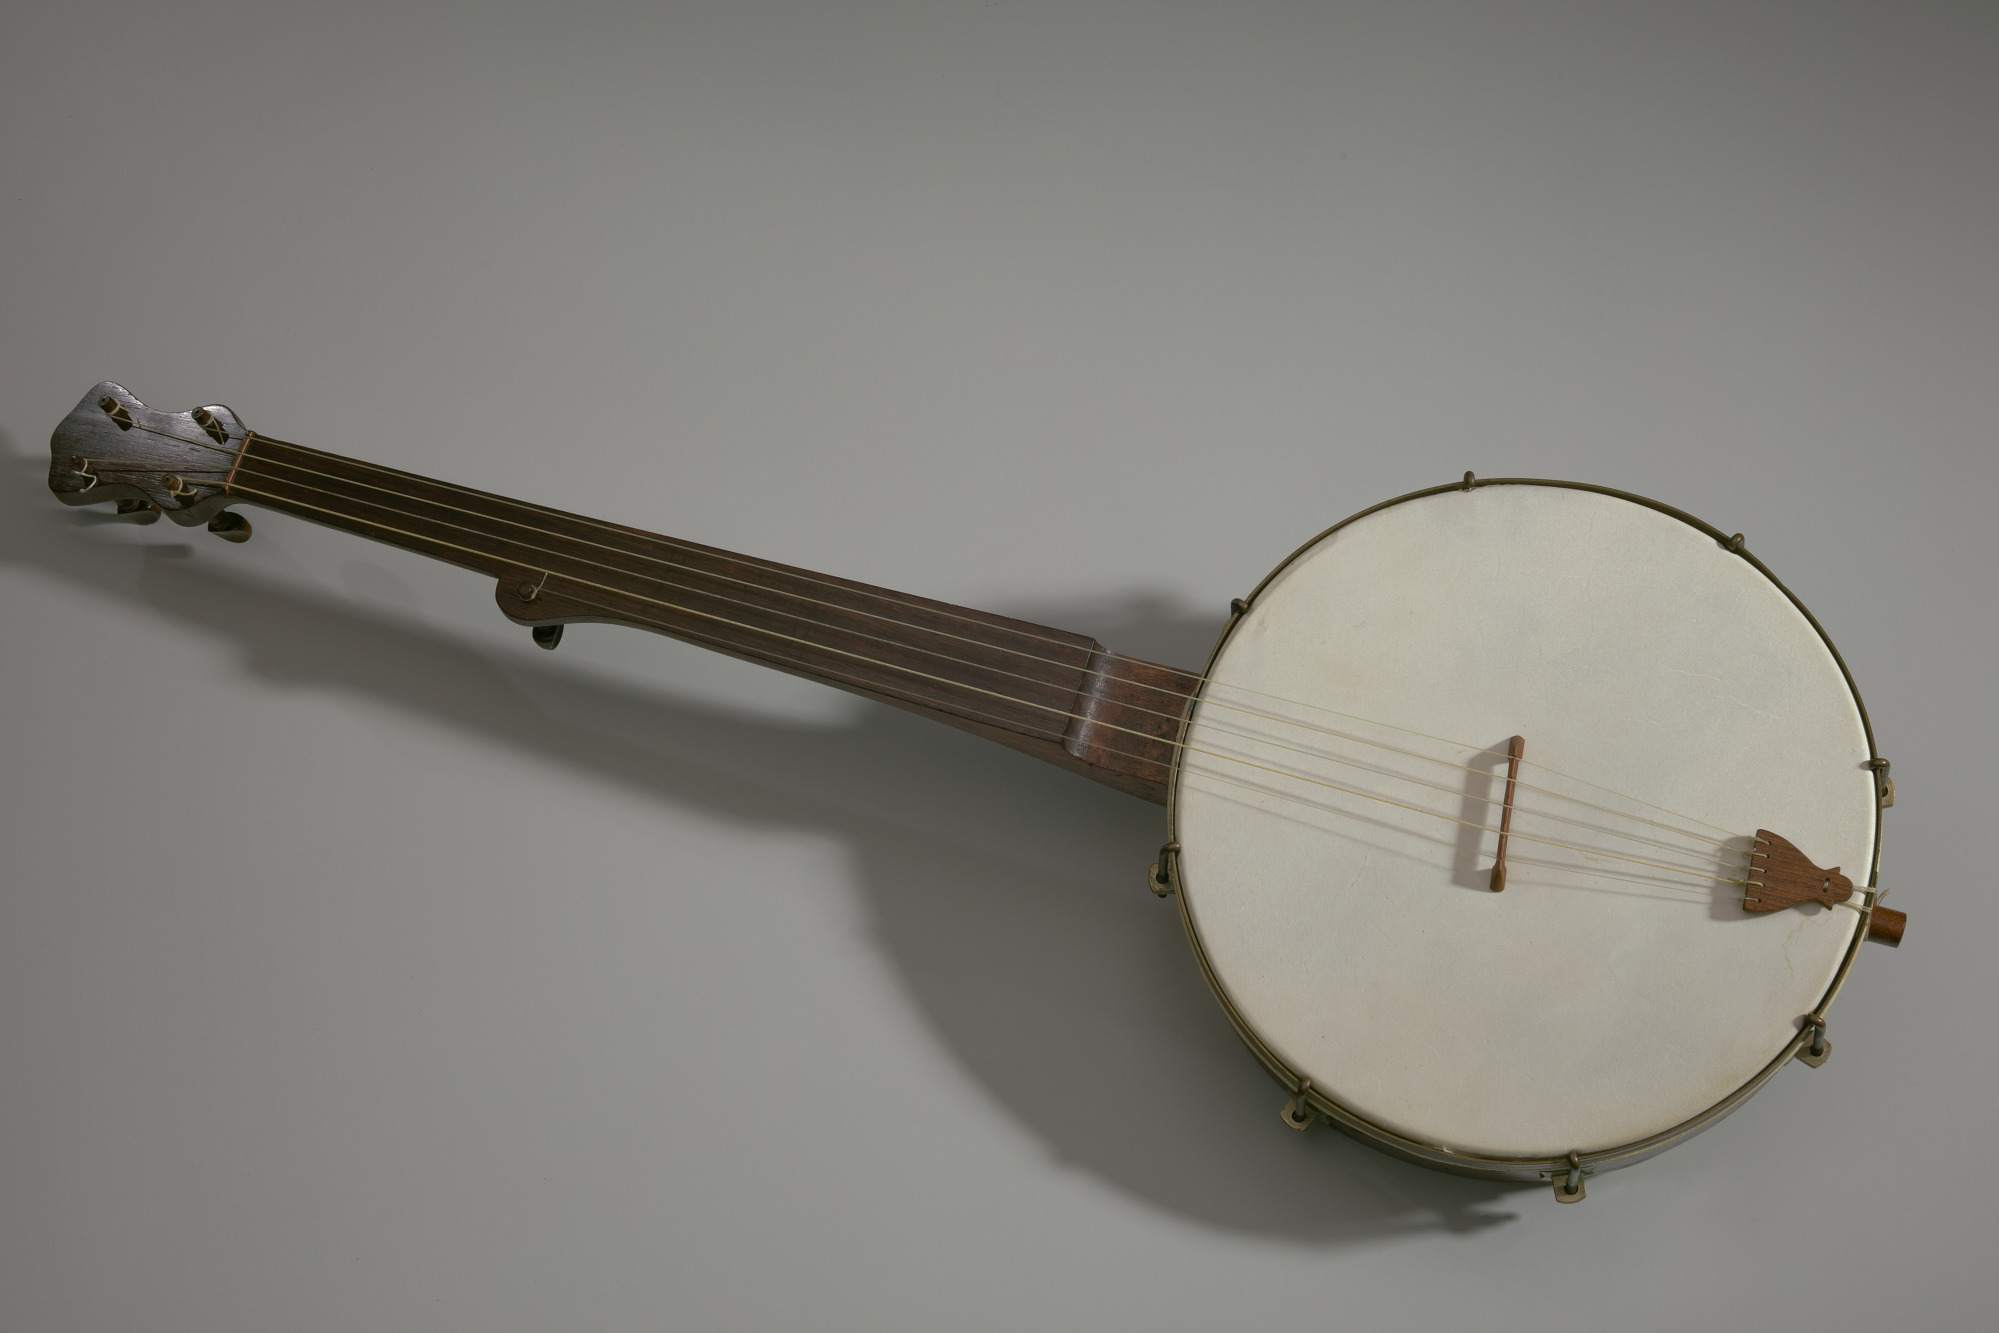 Banjo made in the style of William Esperance Boucher, Jr. - Image version 1